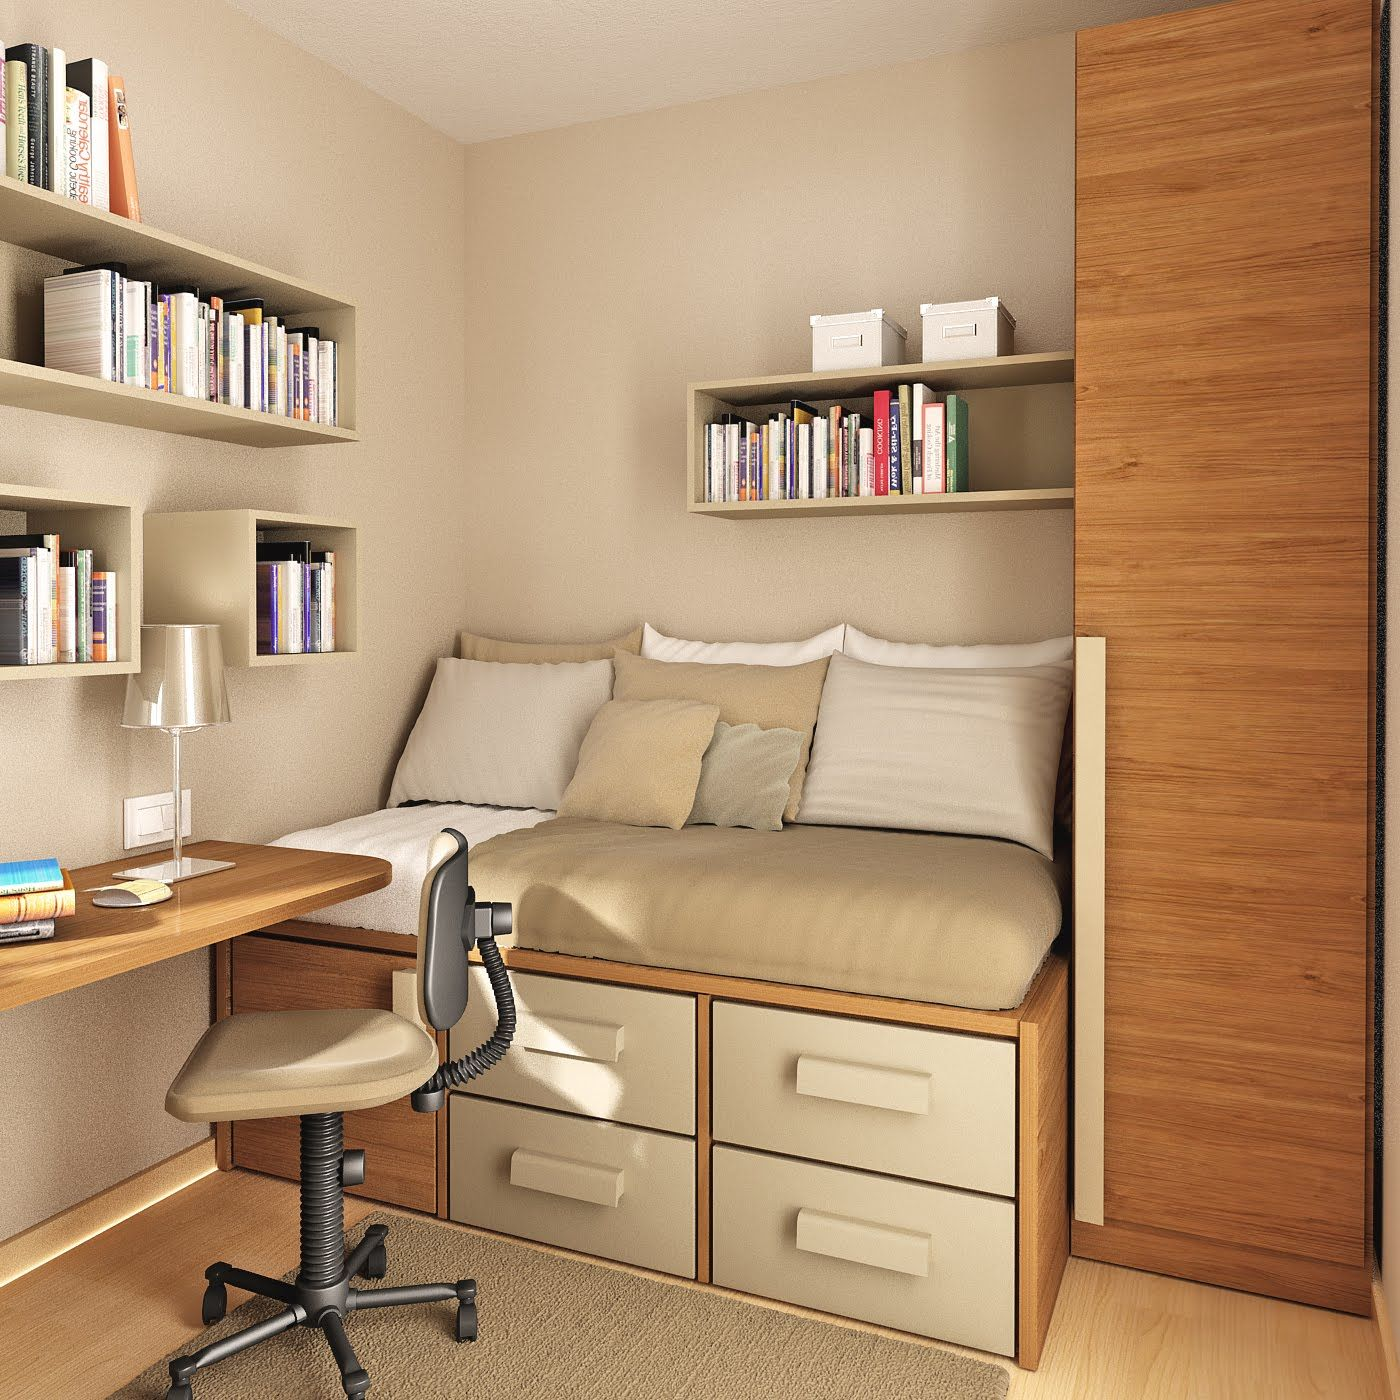 Modern Minimalist 3D Bedroom Layout With Virtual Bookcase And Wall Mounted Desk Design Free Online Room